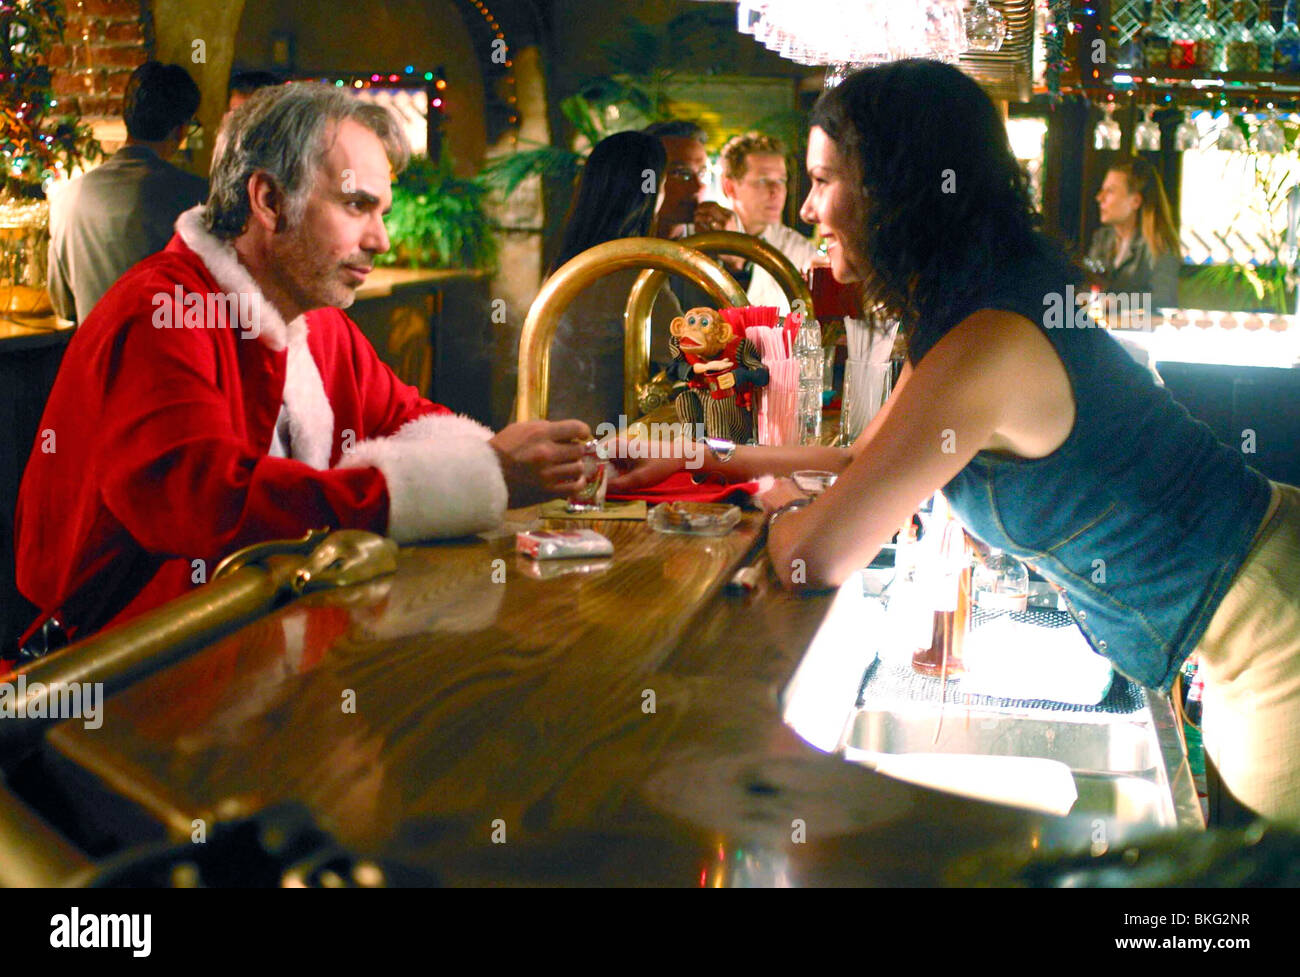 Bad Santa Movie Stock Photos Bad Santa Movie Stock Images Alamy